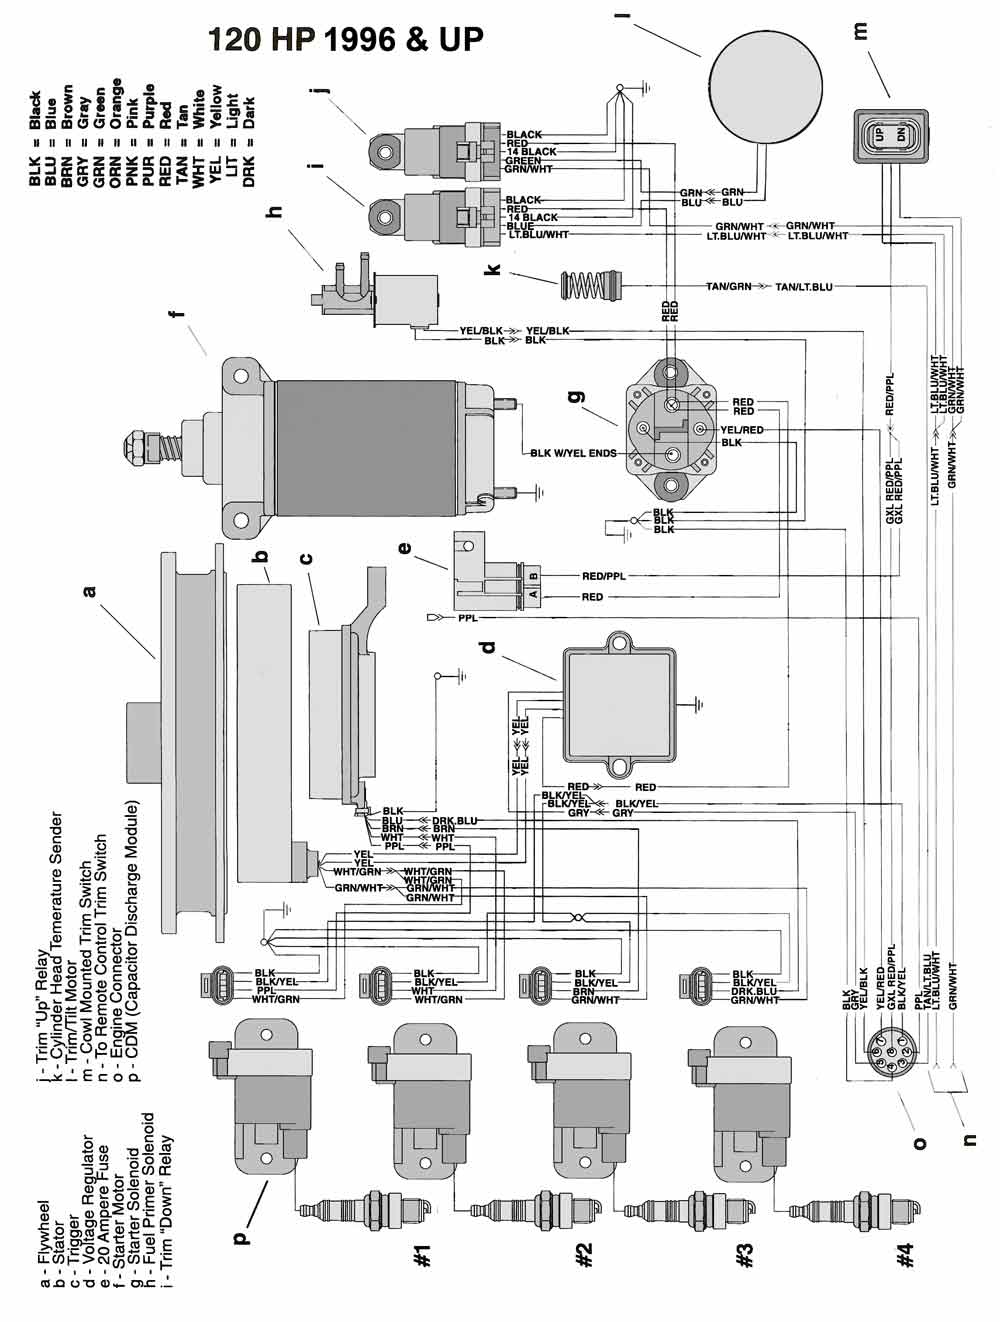 chrysler outboard wiring diagrams mastertech marine rh maxrules com force outboard motor wiring diagram force 40 outboard wiring diagram